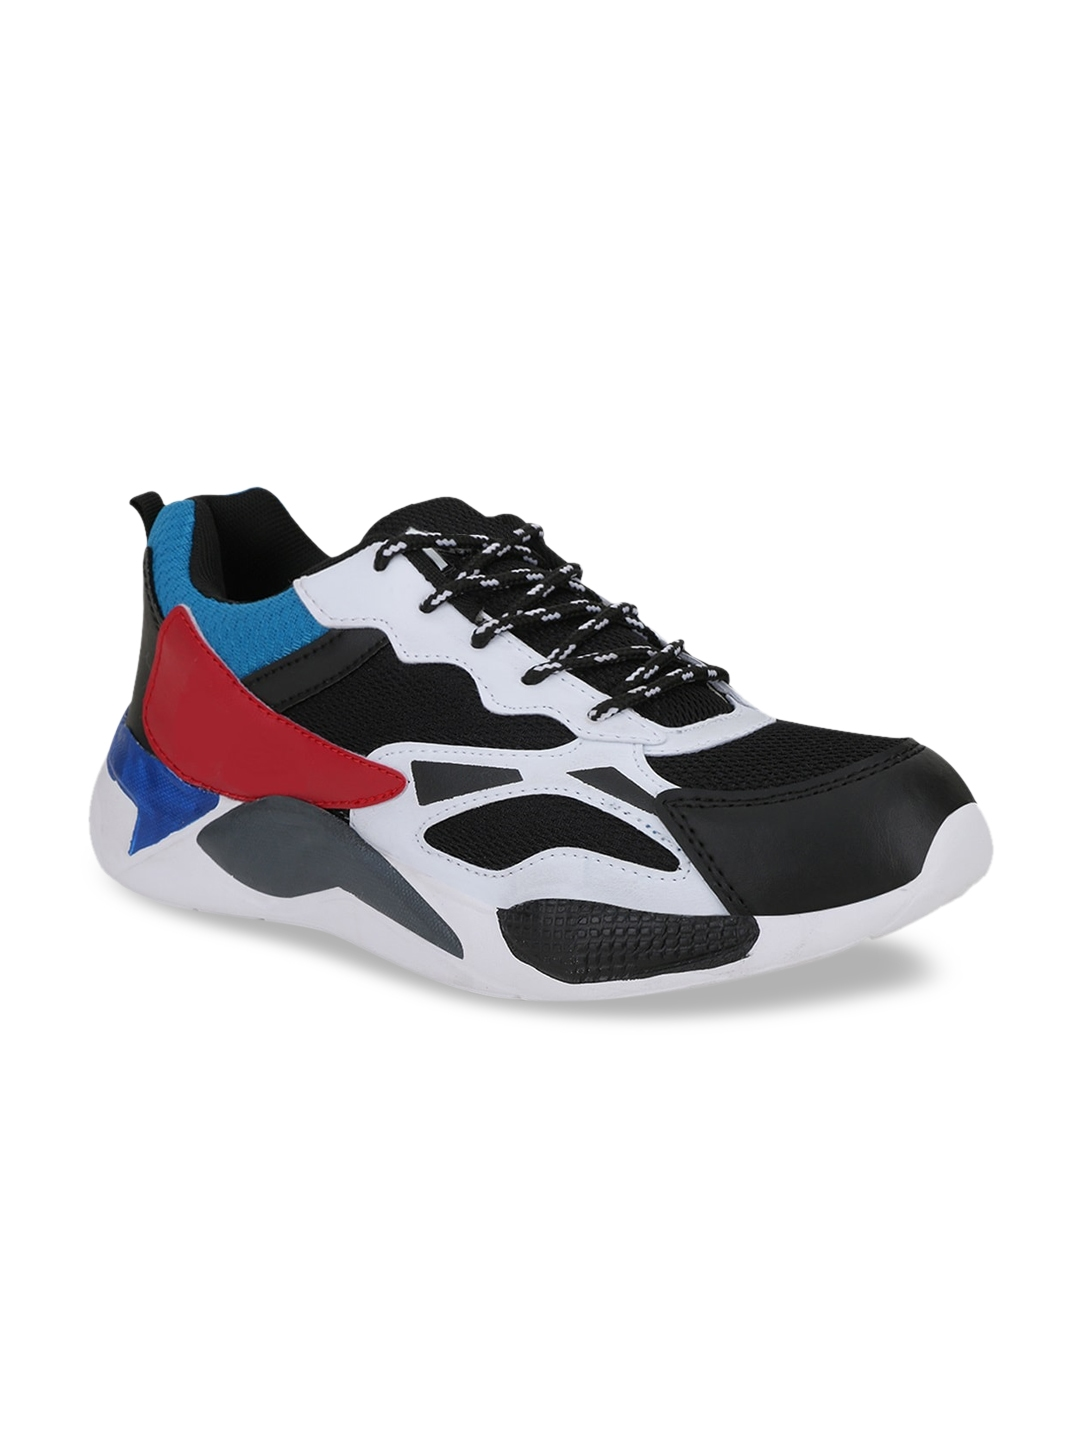 FAST TRAX Men Black   Red Colourblocked Sneakers Casual Shoes